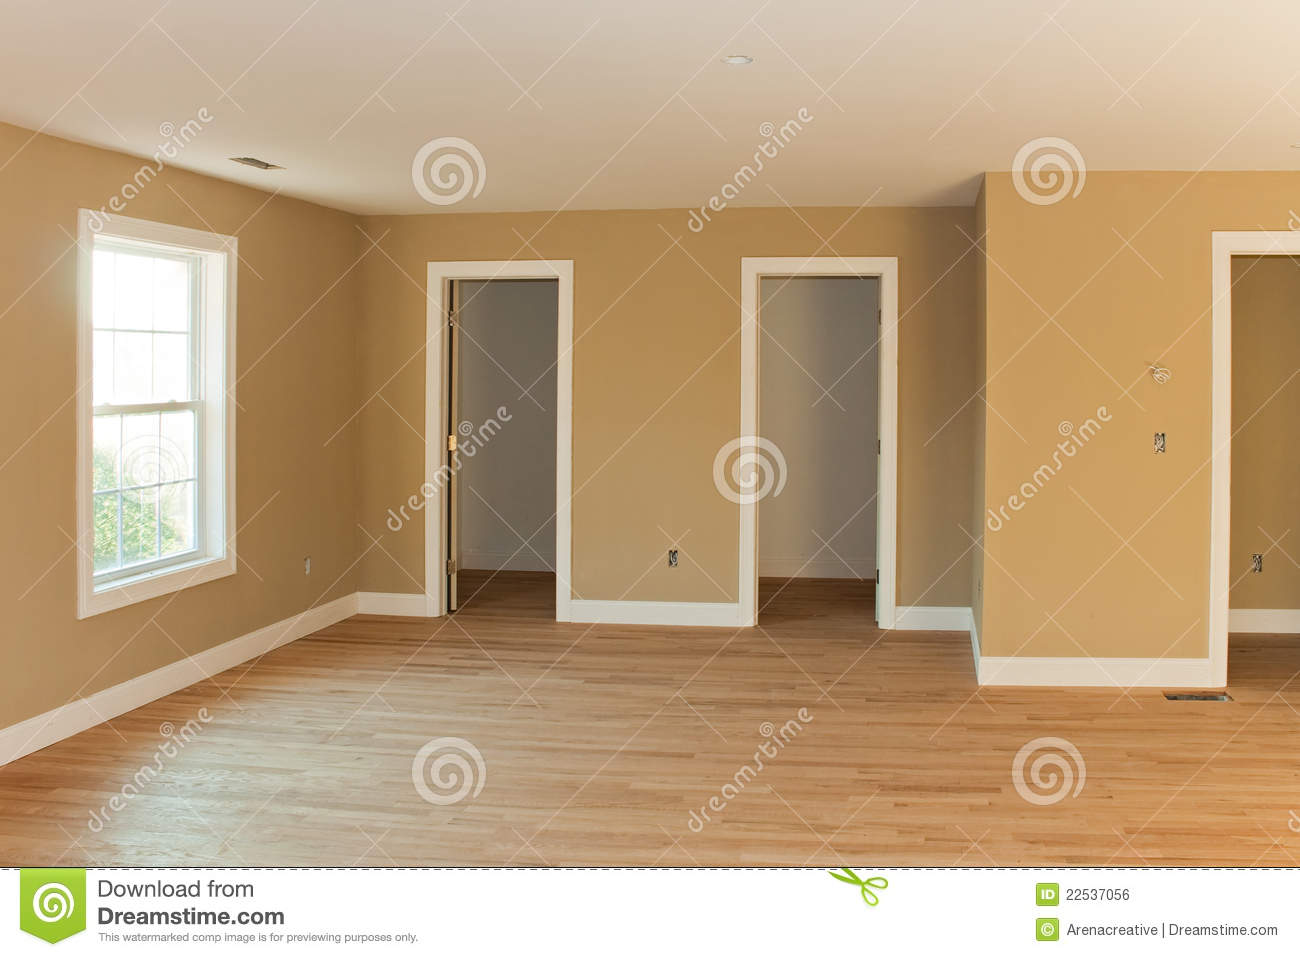 brand new home room interior royalty free stock image